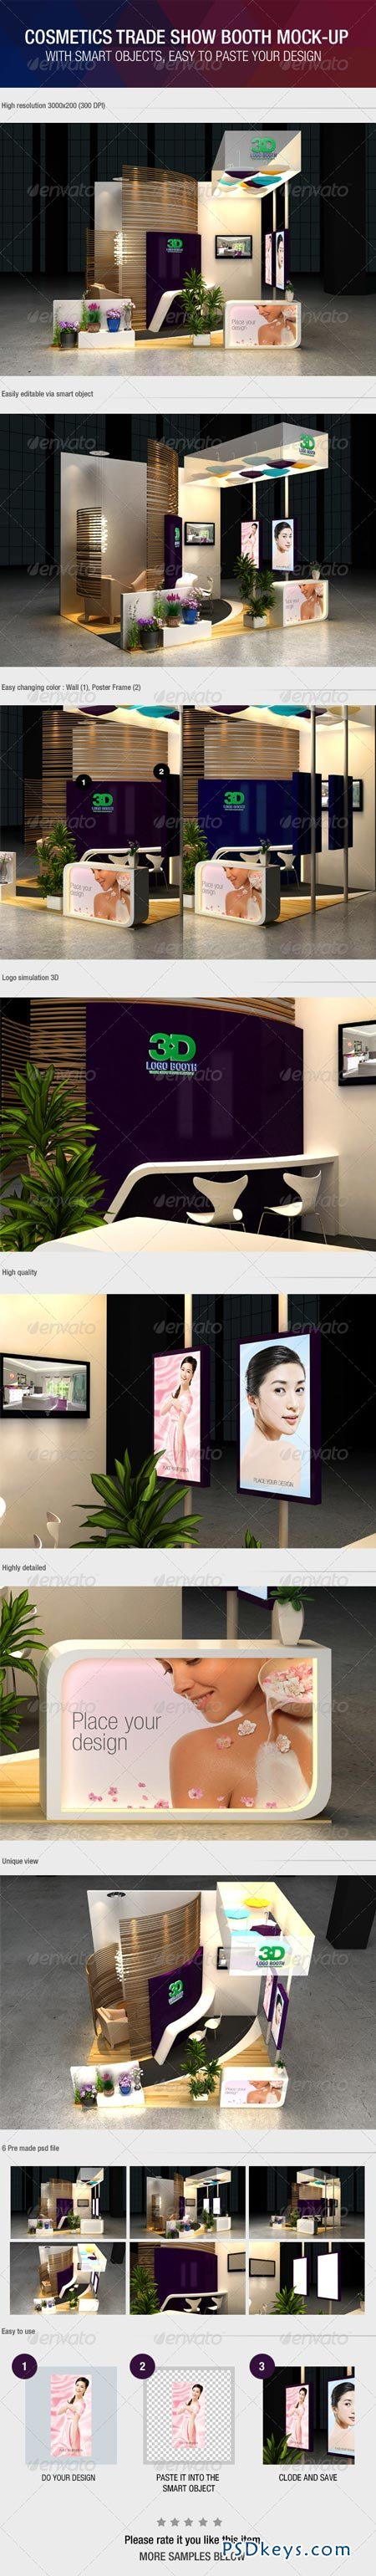 Cosmetics Exhibition Booth Mock-Up 6387882